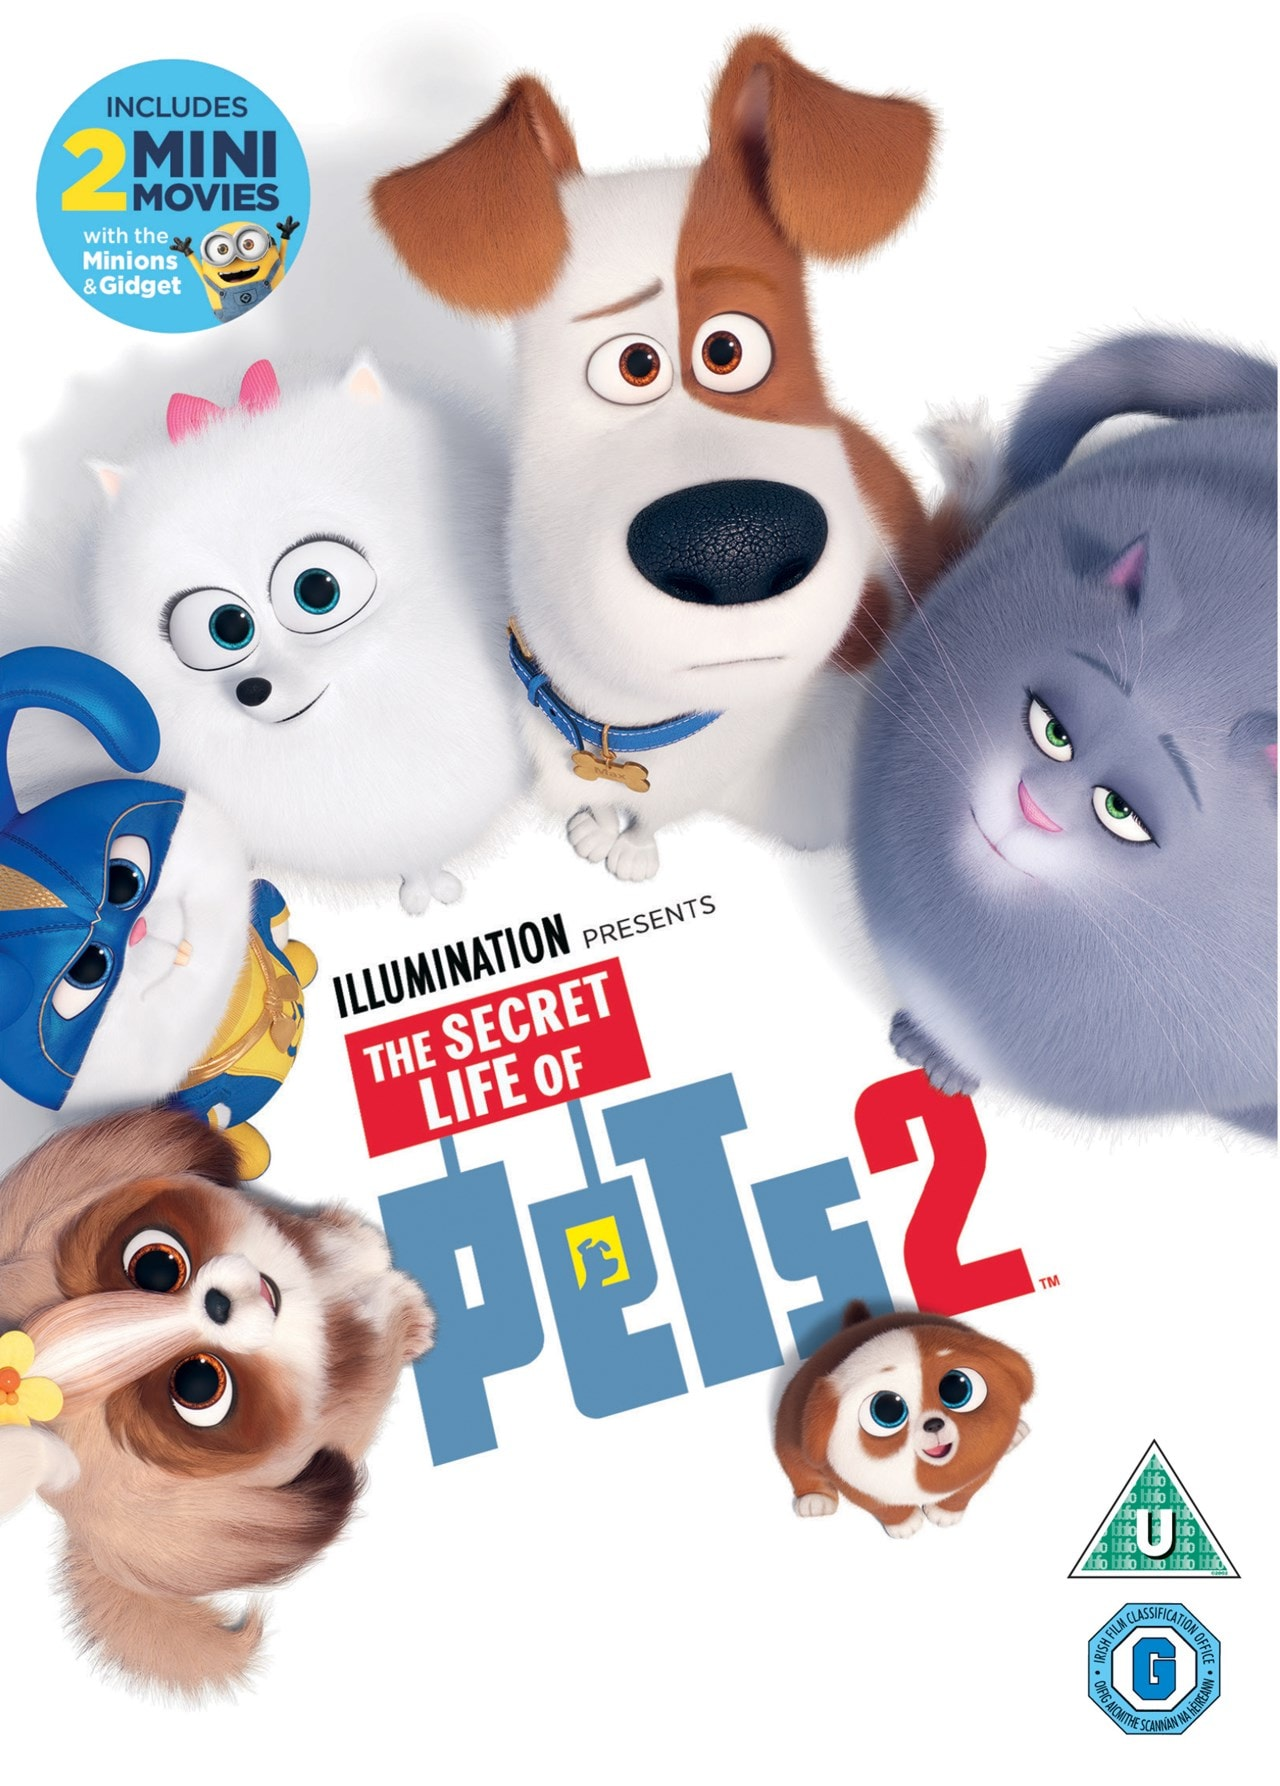 The Secret Life of Pets 2 - 1